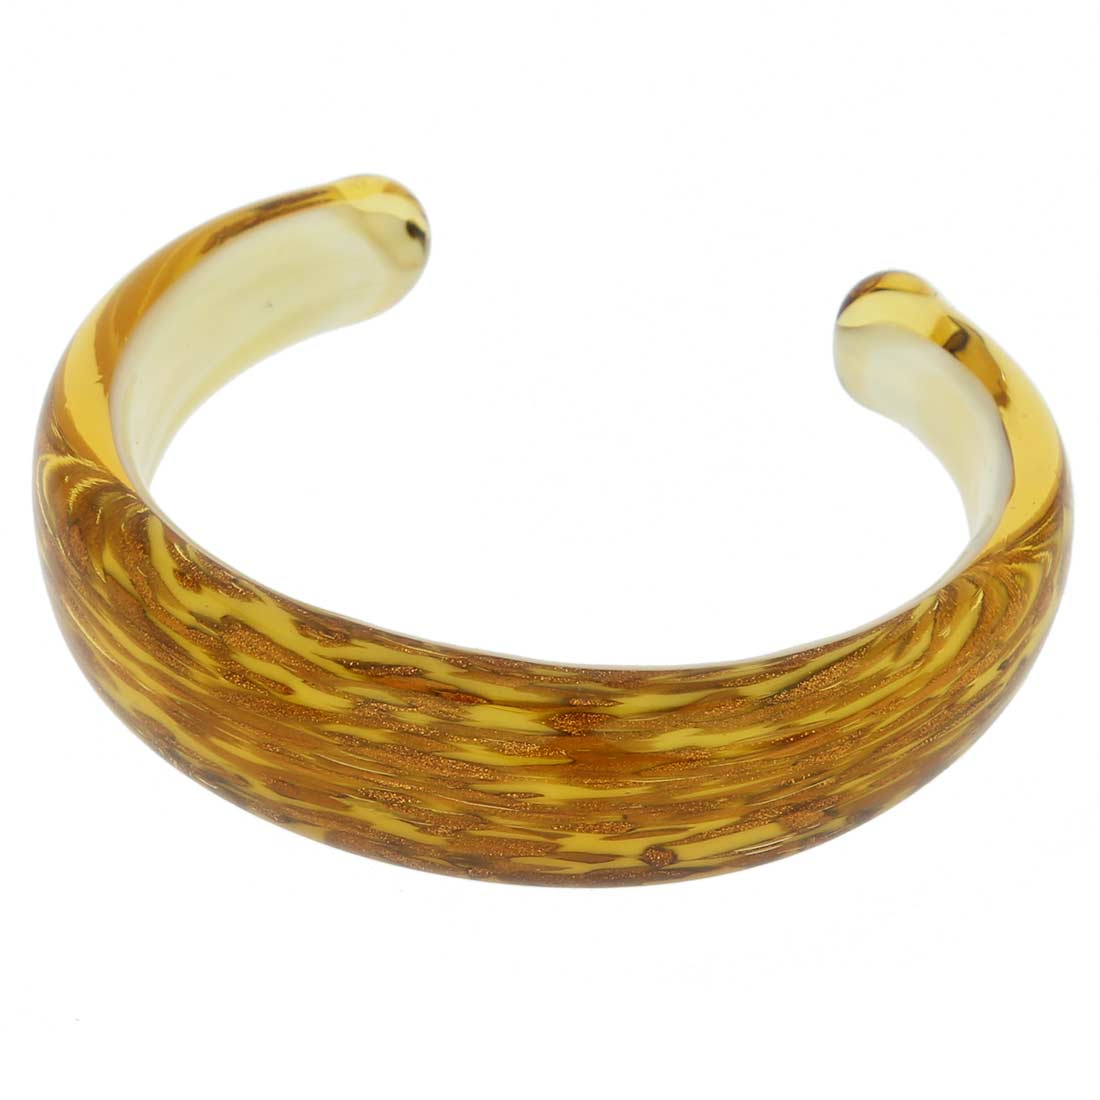 Avventurina Honey Bracelet